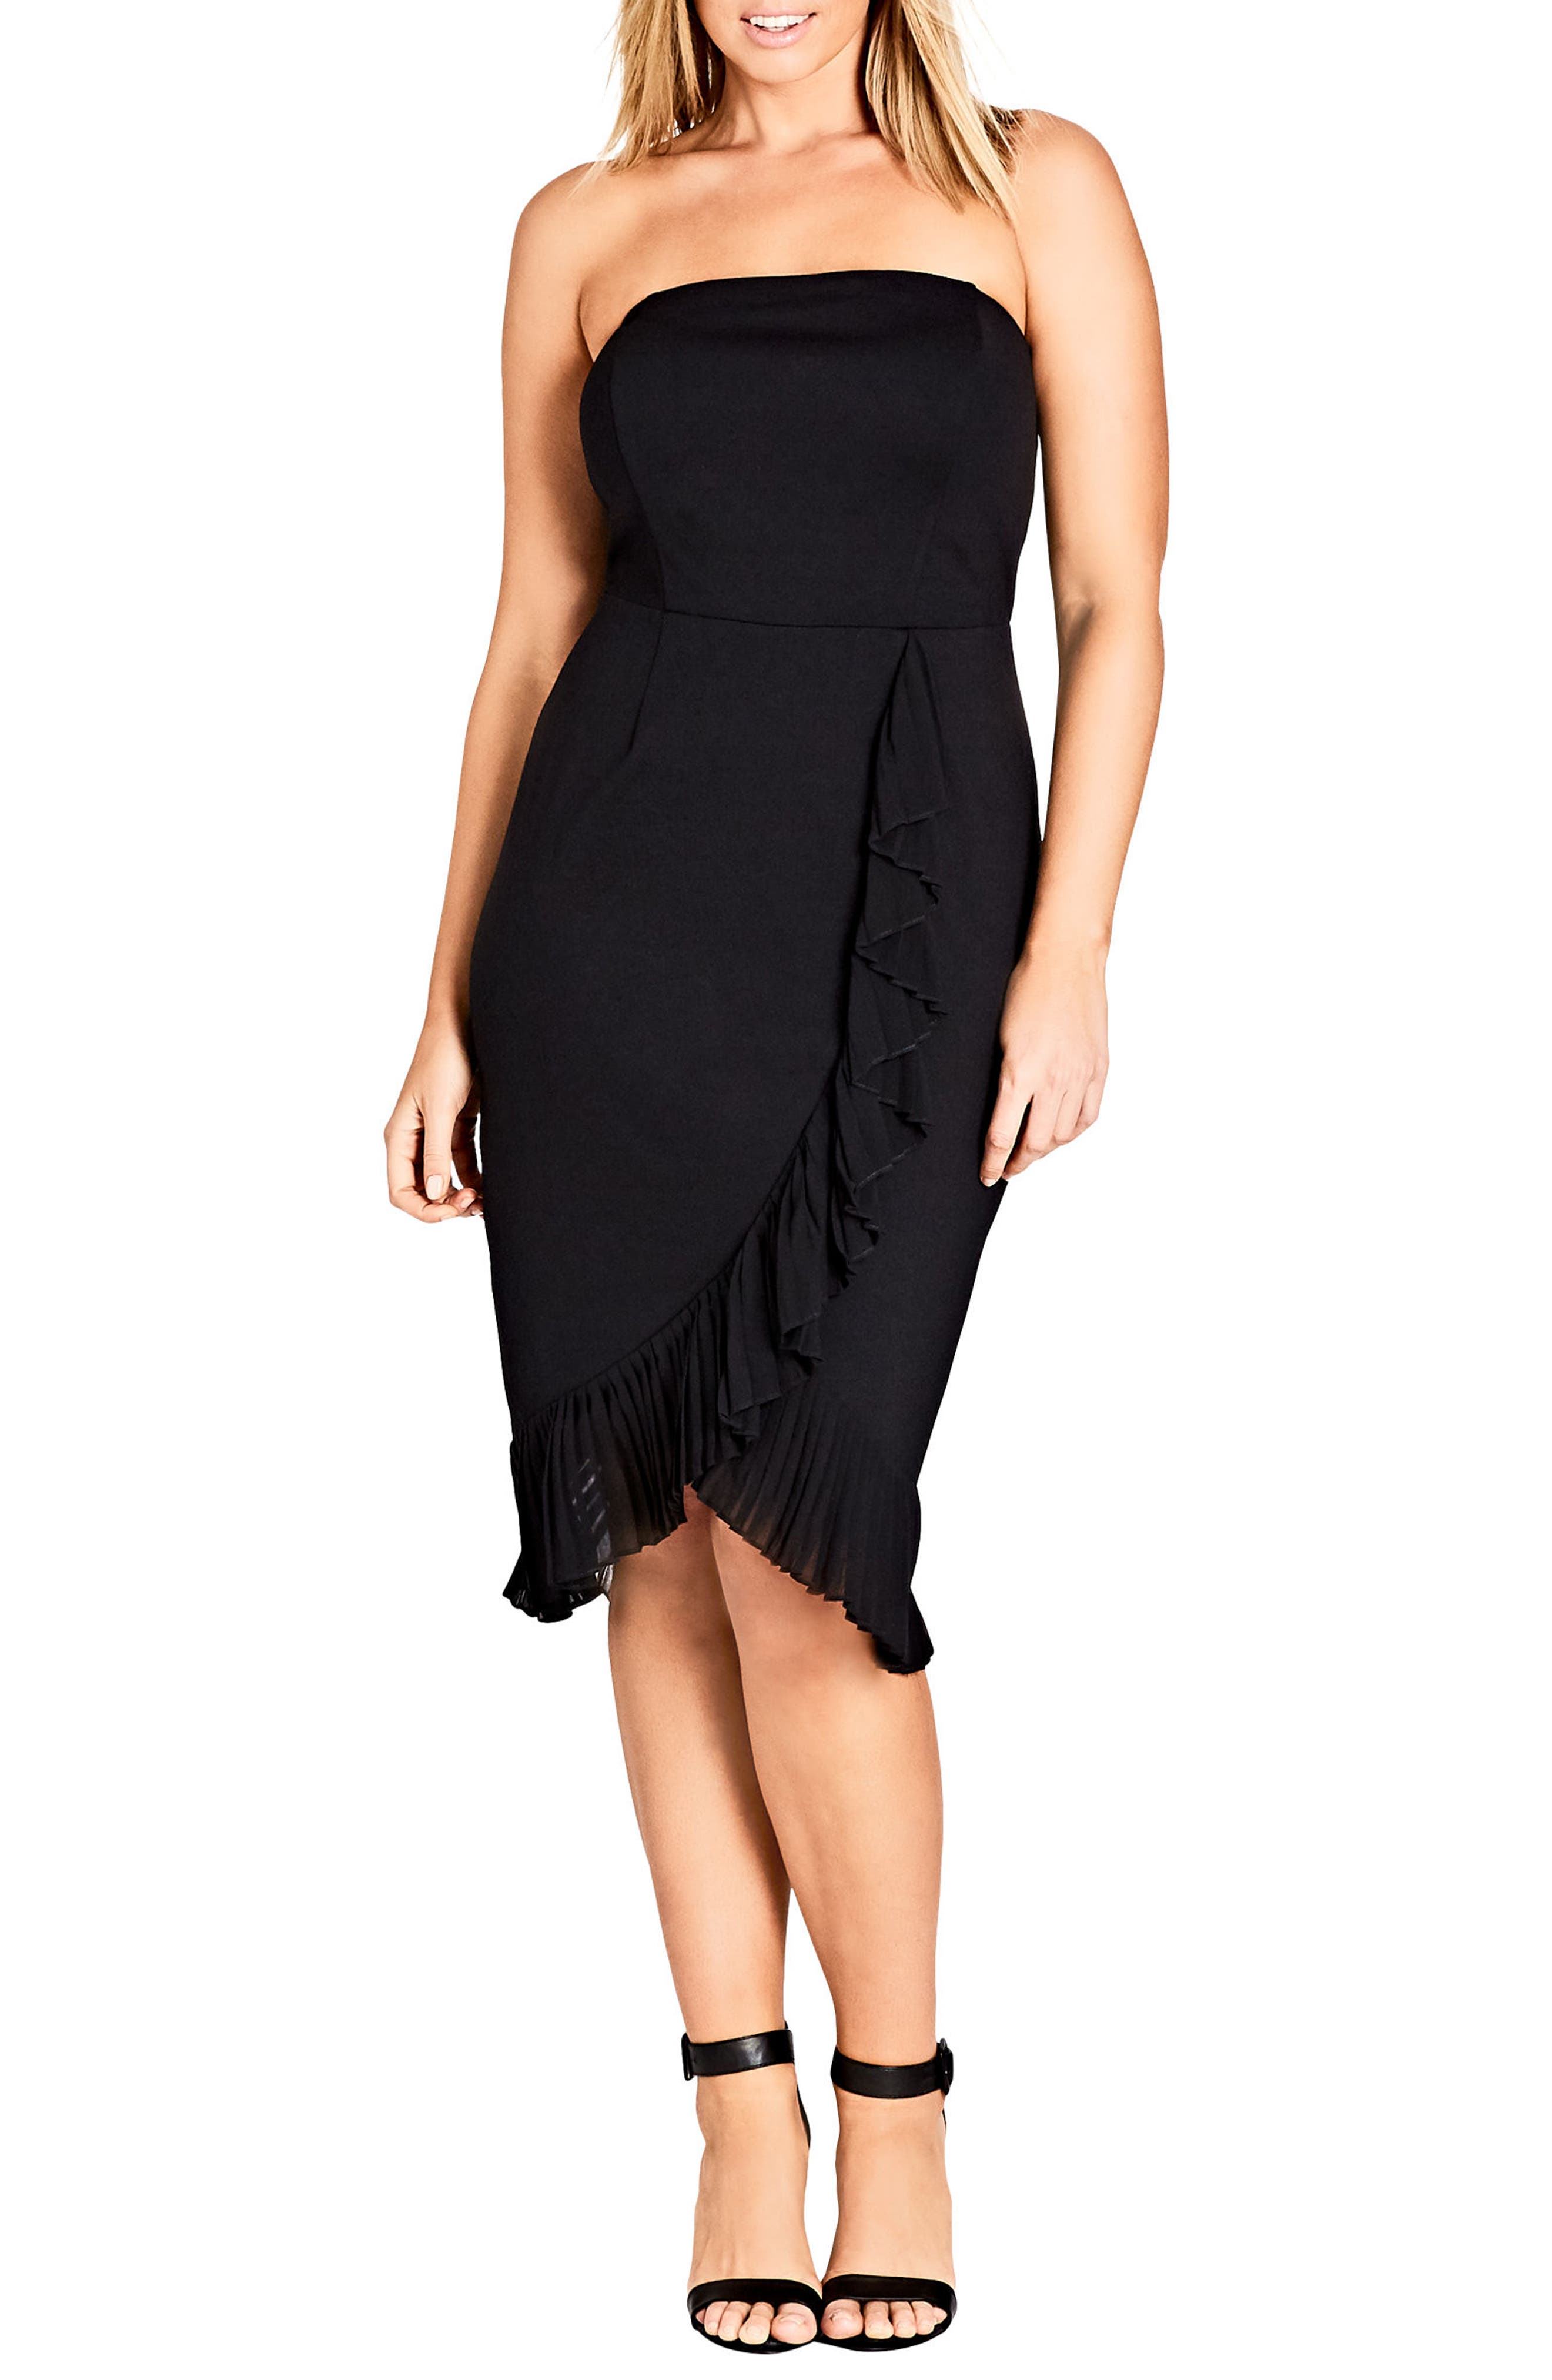 Alternate Image 1 Selected - City Chic Chic Love Strapless Ruffle Trim Dress (Plus Size)